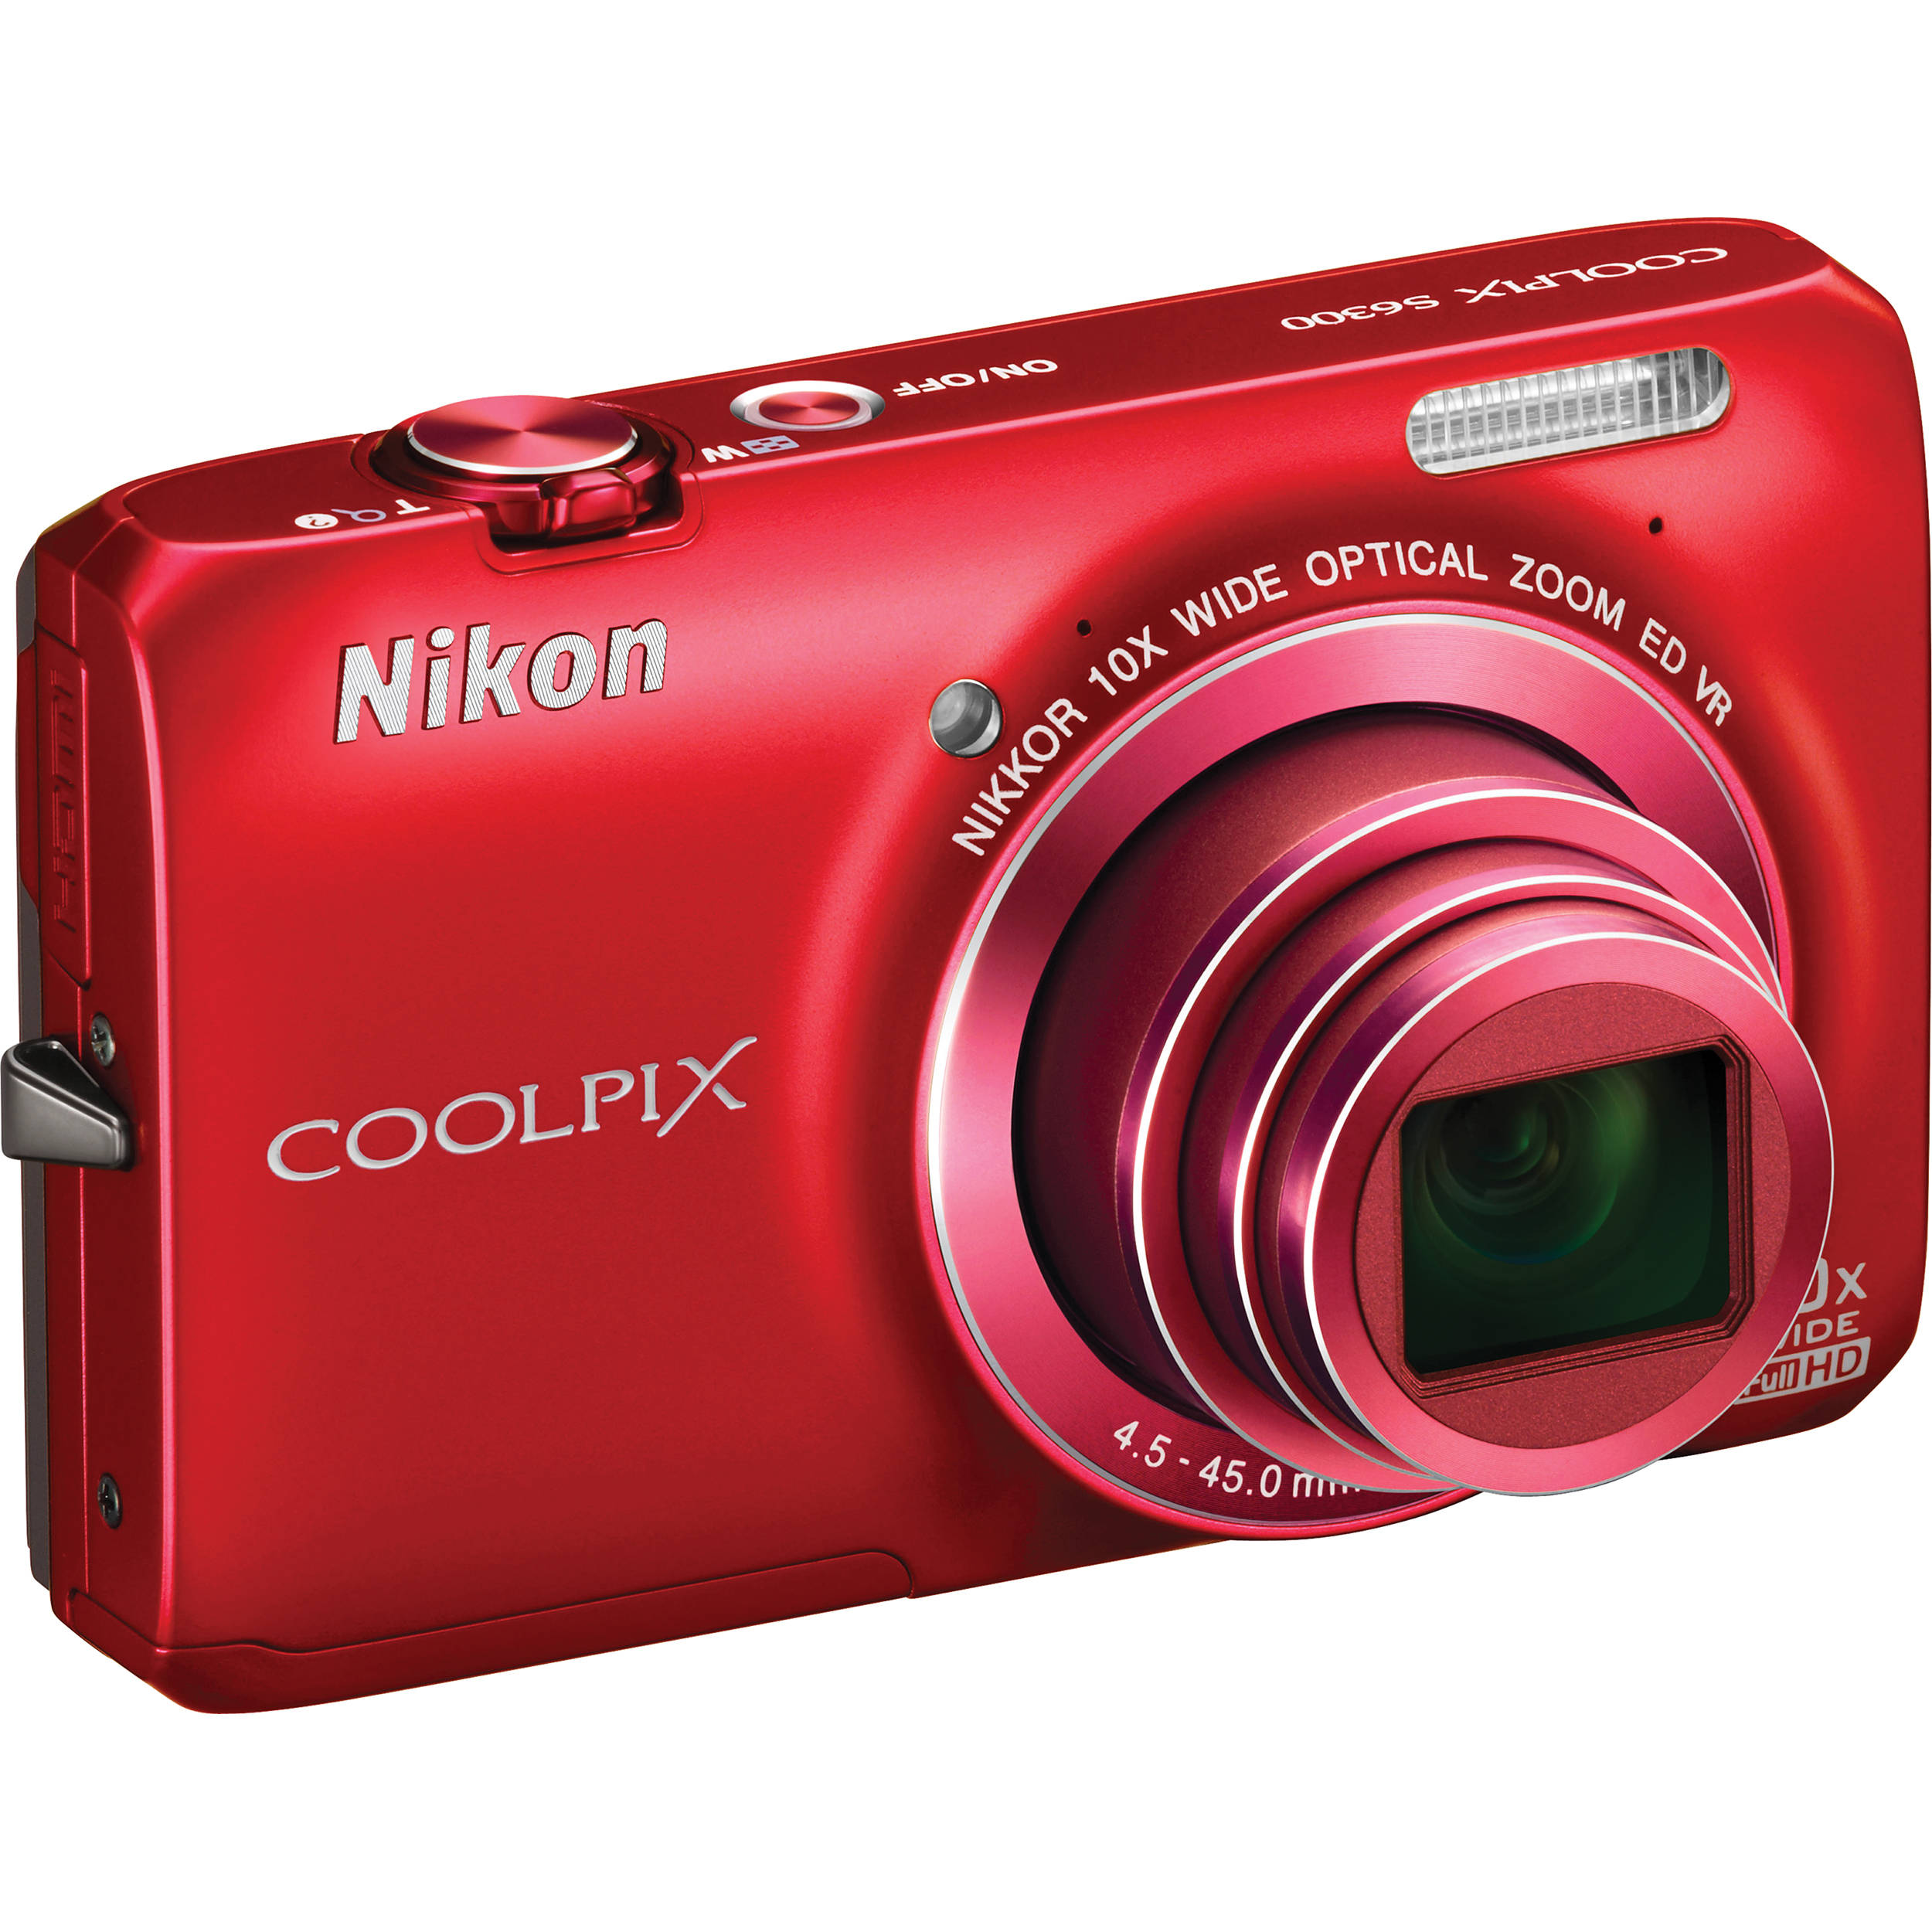 nikon coolpix s6300 digital camera red 26335 b h photo video rh bhphotovideo com Nikon Coolpix 3100 Digital Camera Nikon Coolpix S3000